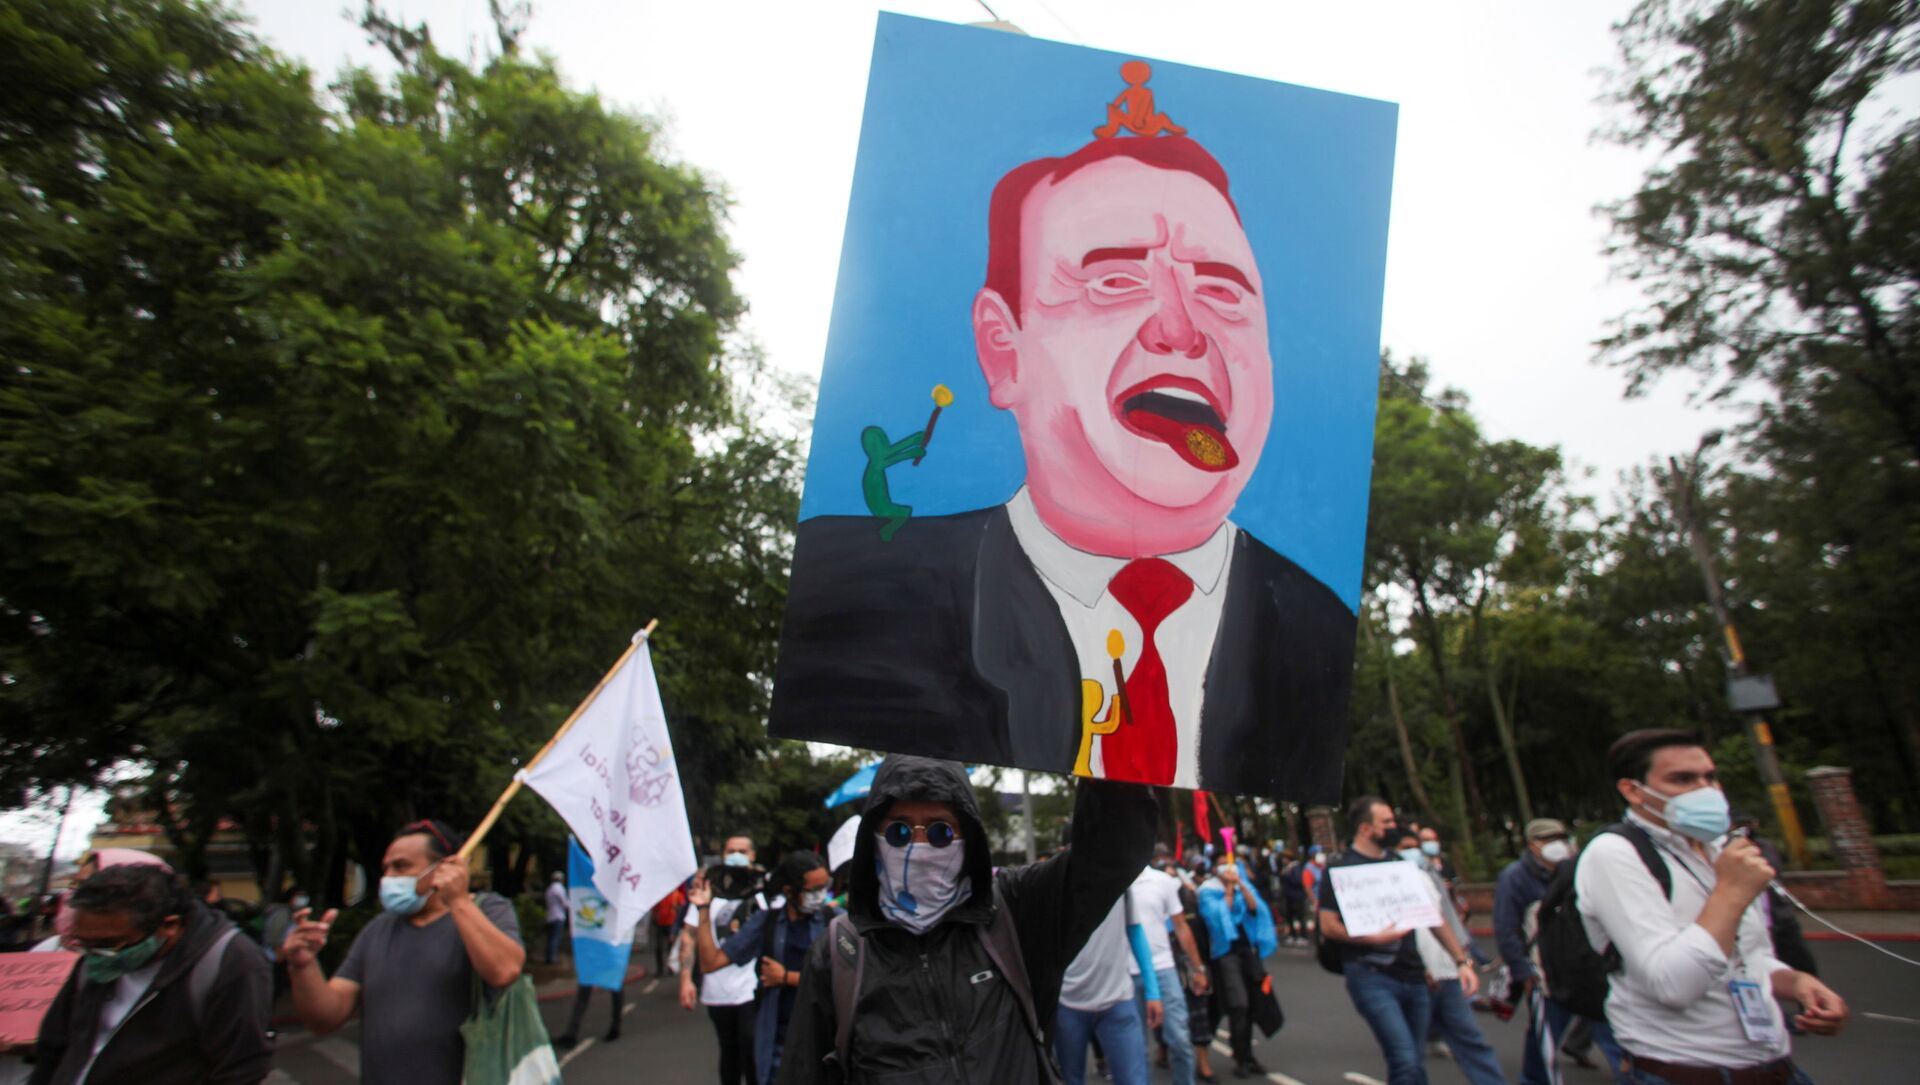 A demonstrator holds up a painting of Guatemalan President Alejandro Giammattei during a protest to demand the resignation of Giammattei and Attorney General Maria Porras, in Guatemala City, Guatemala July 29, 2021 - Sputnik International, 1920, 30.07.2021